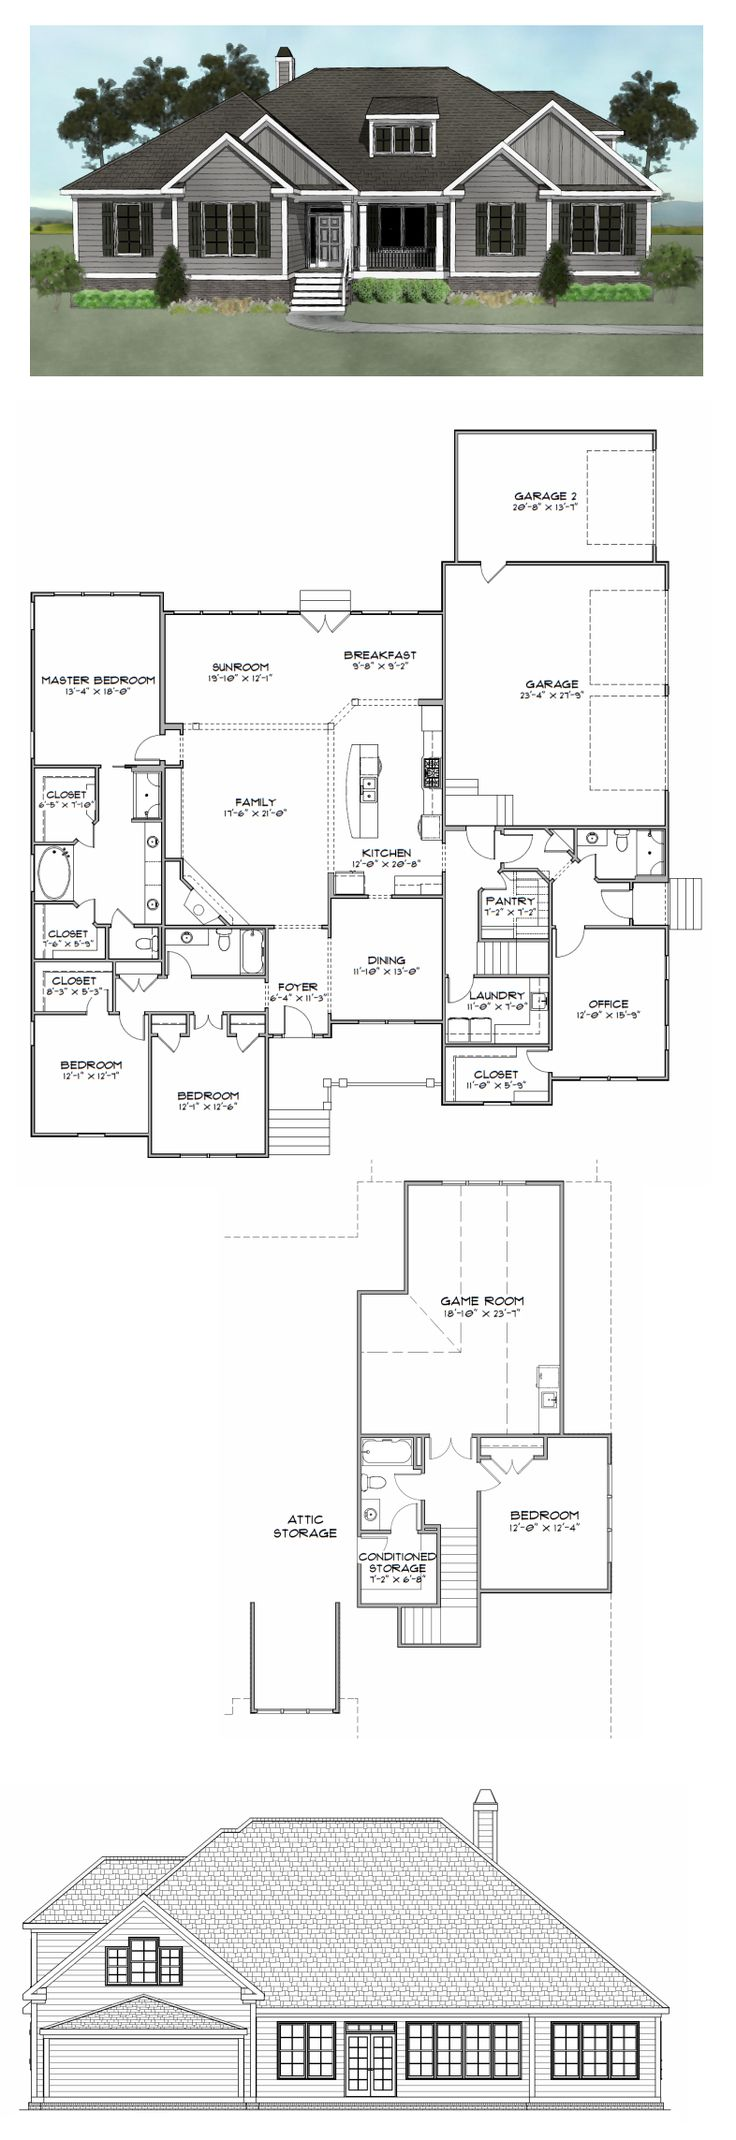 1000 images about house plans over 2800 sq ft on for 2800 square foot house plans